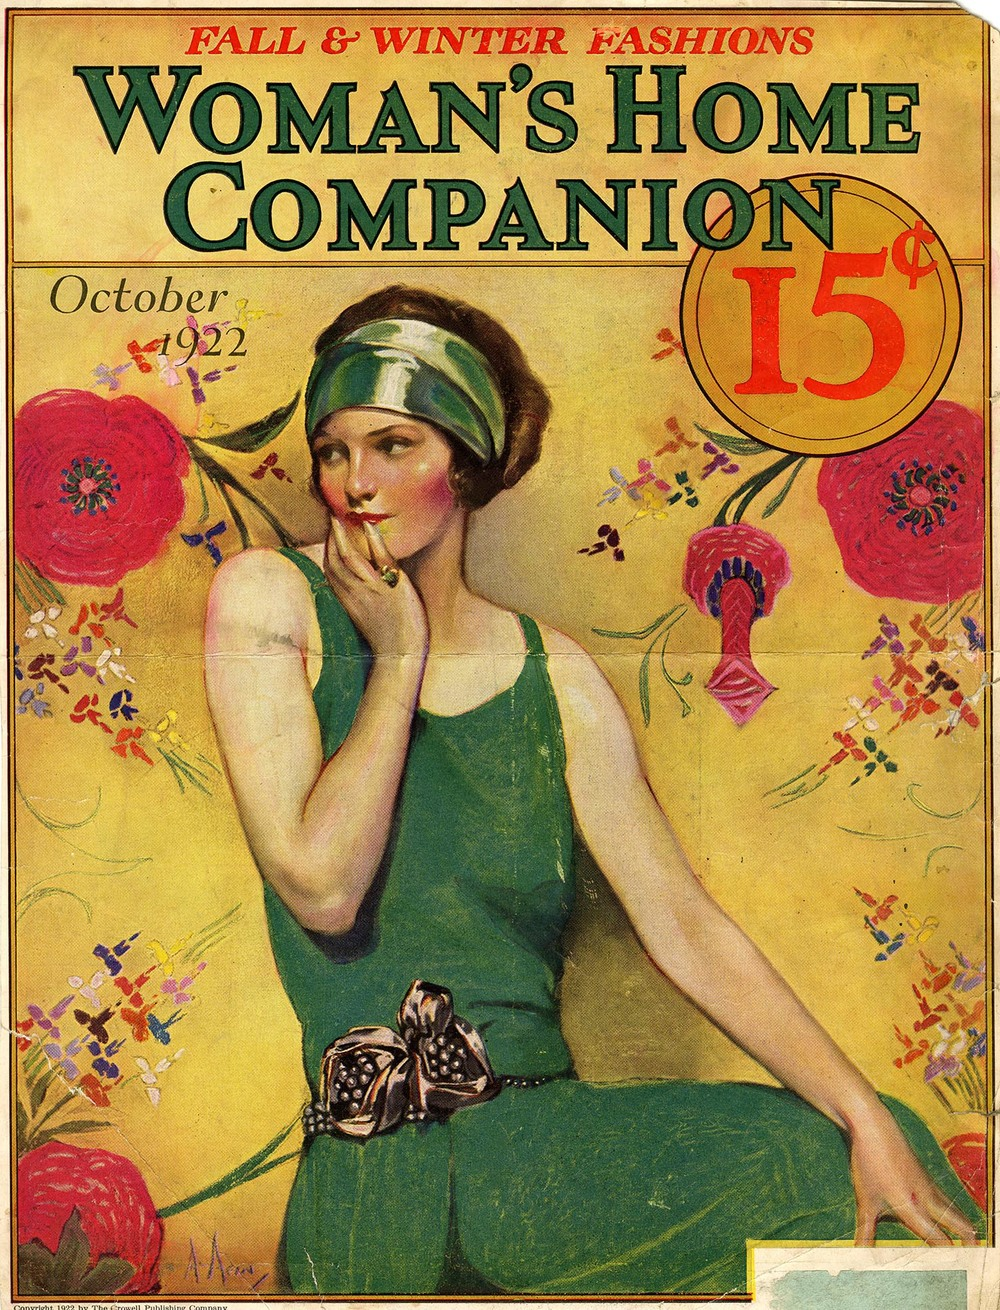 Neysa McMein, cover illustration, Woman's Home Companion, October 1922. Magazine tear sheet, Walt Reed Illustration Archive, Washington University in St. Louis.